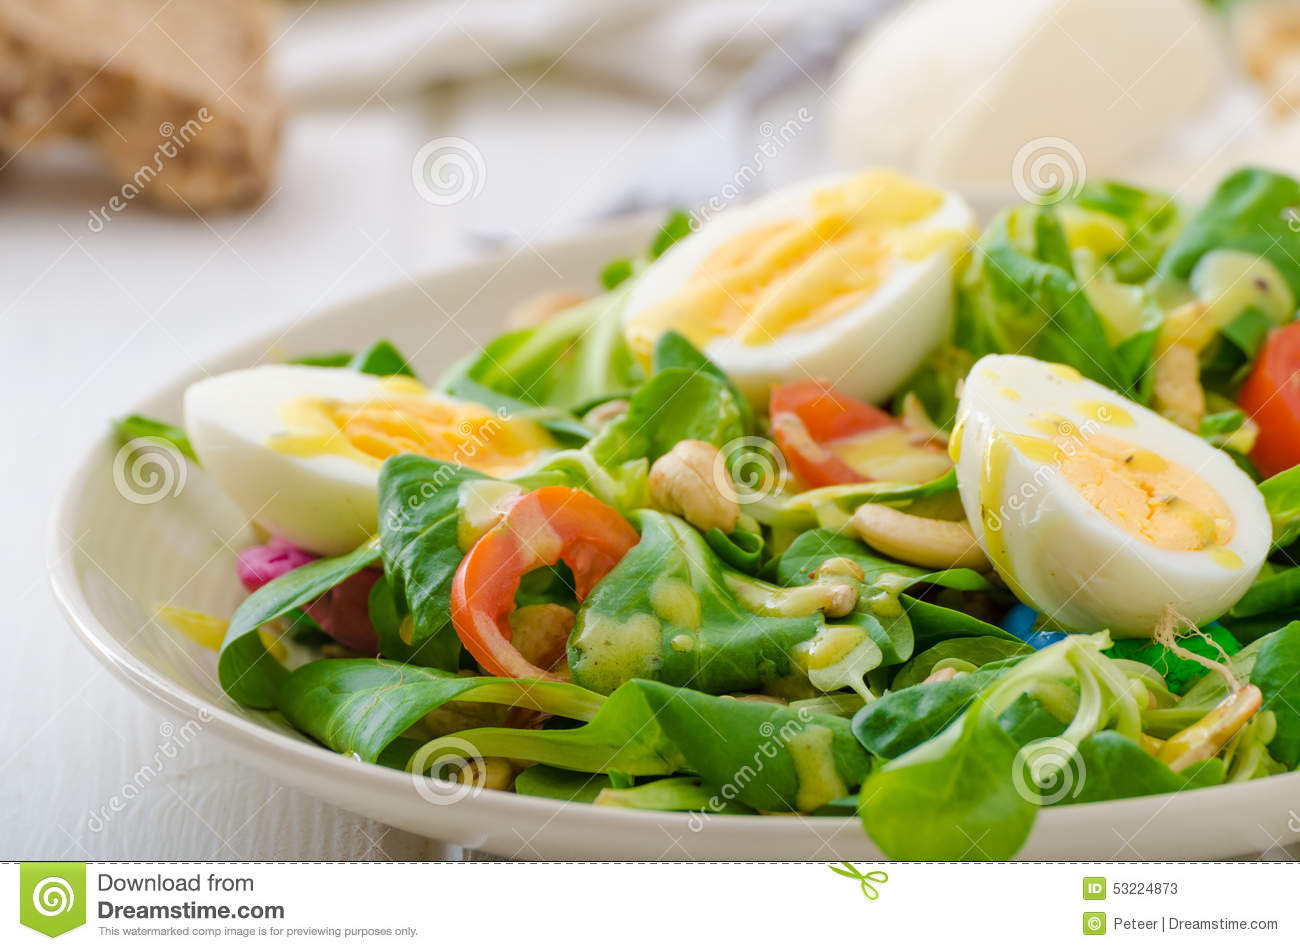 Lamb's Lettuce Salad With Eggs And Nuts Stock Photo - Image: 53224873